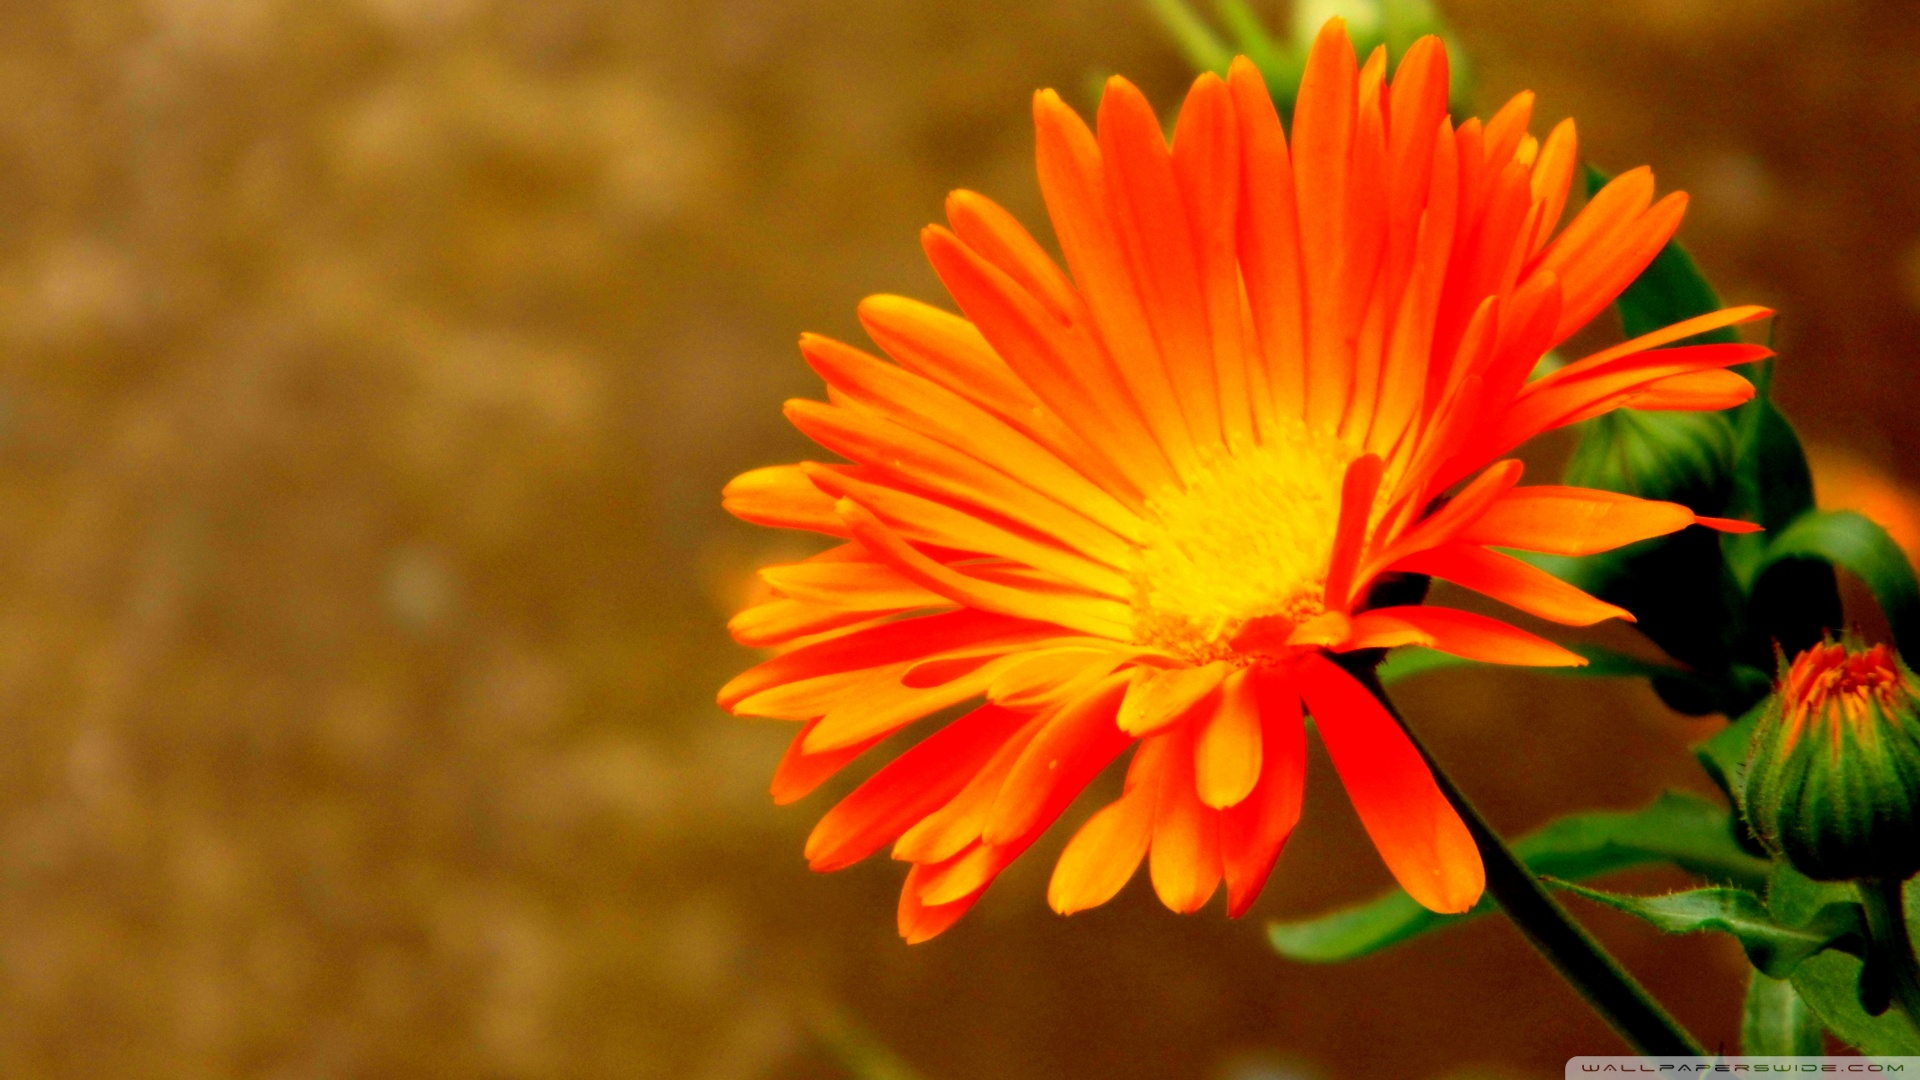 1920x1080 Orange Flower 5 wallpaper